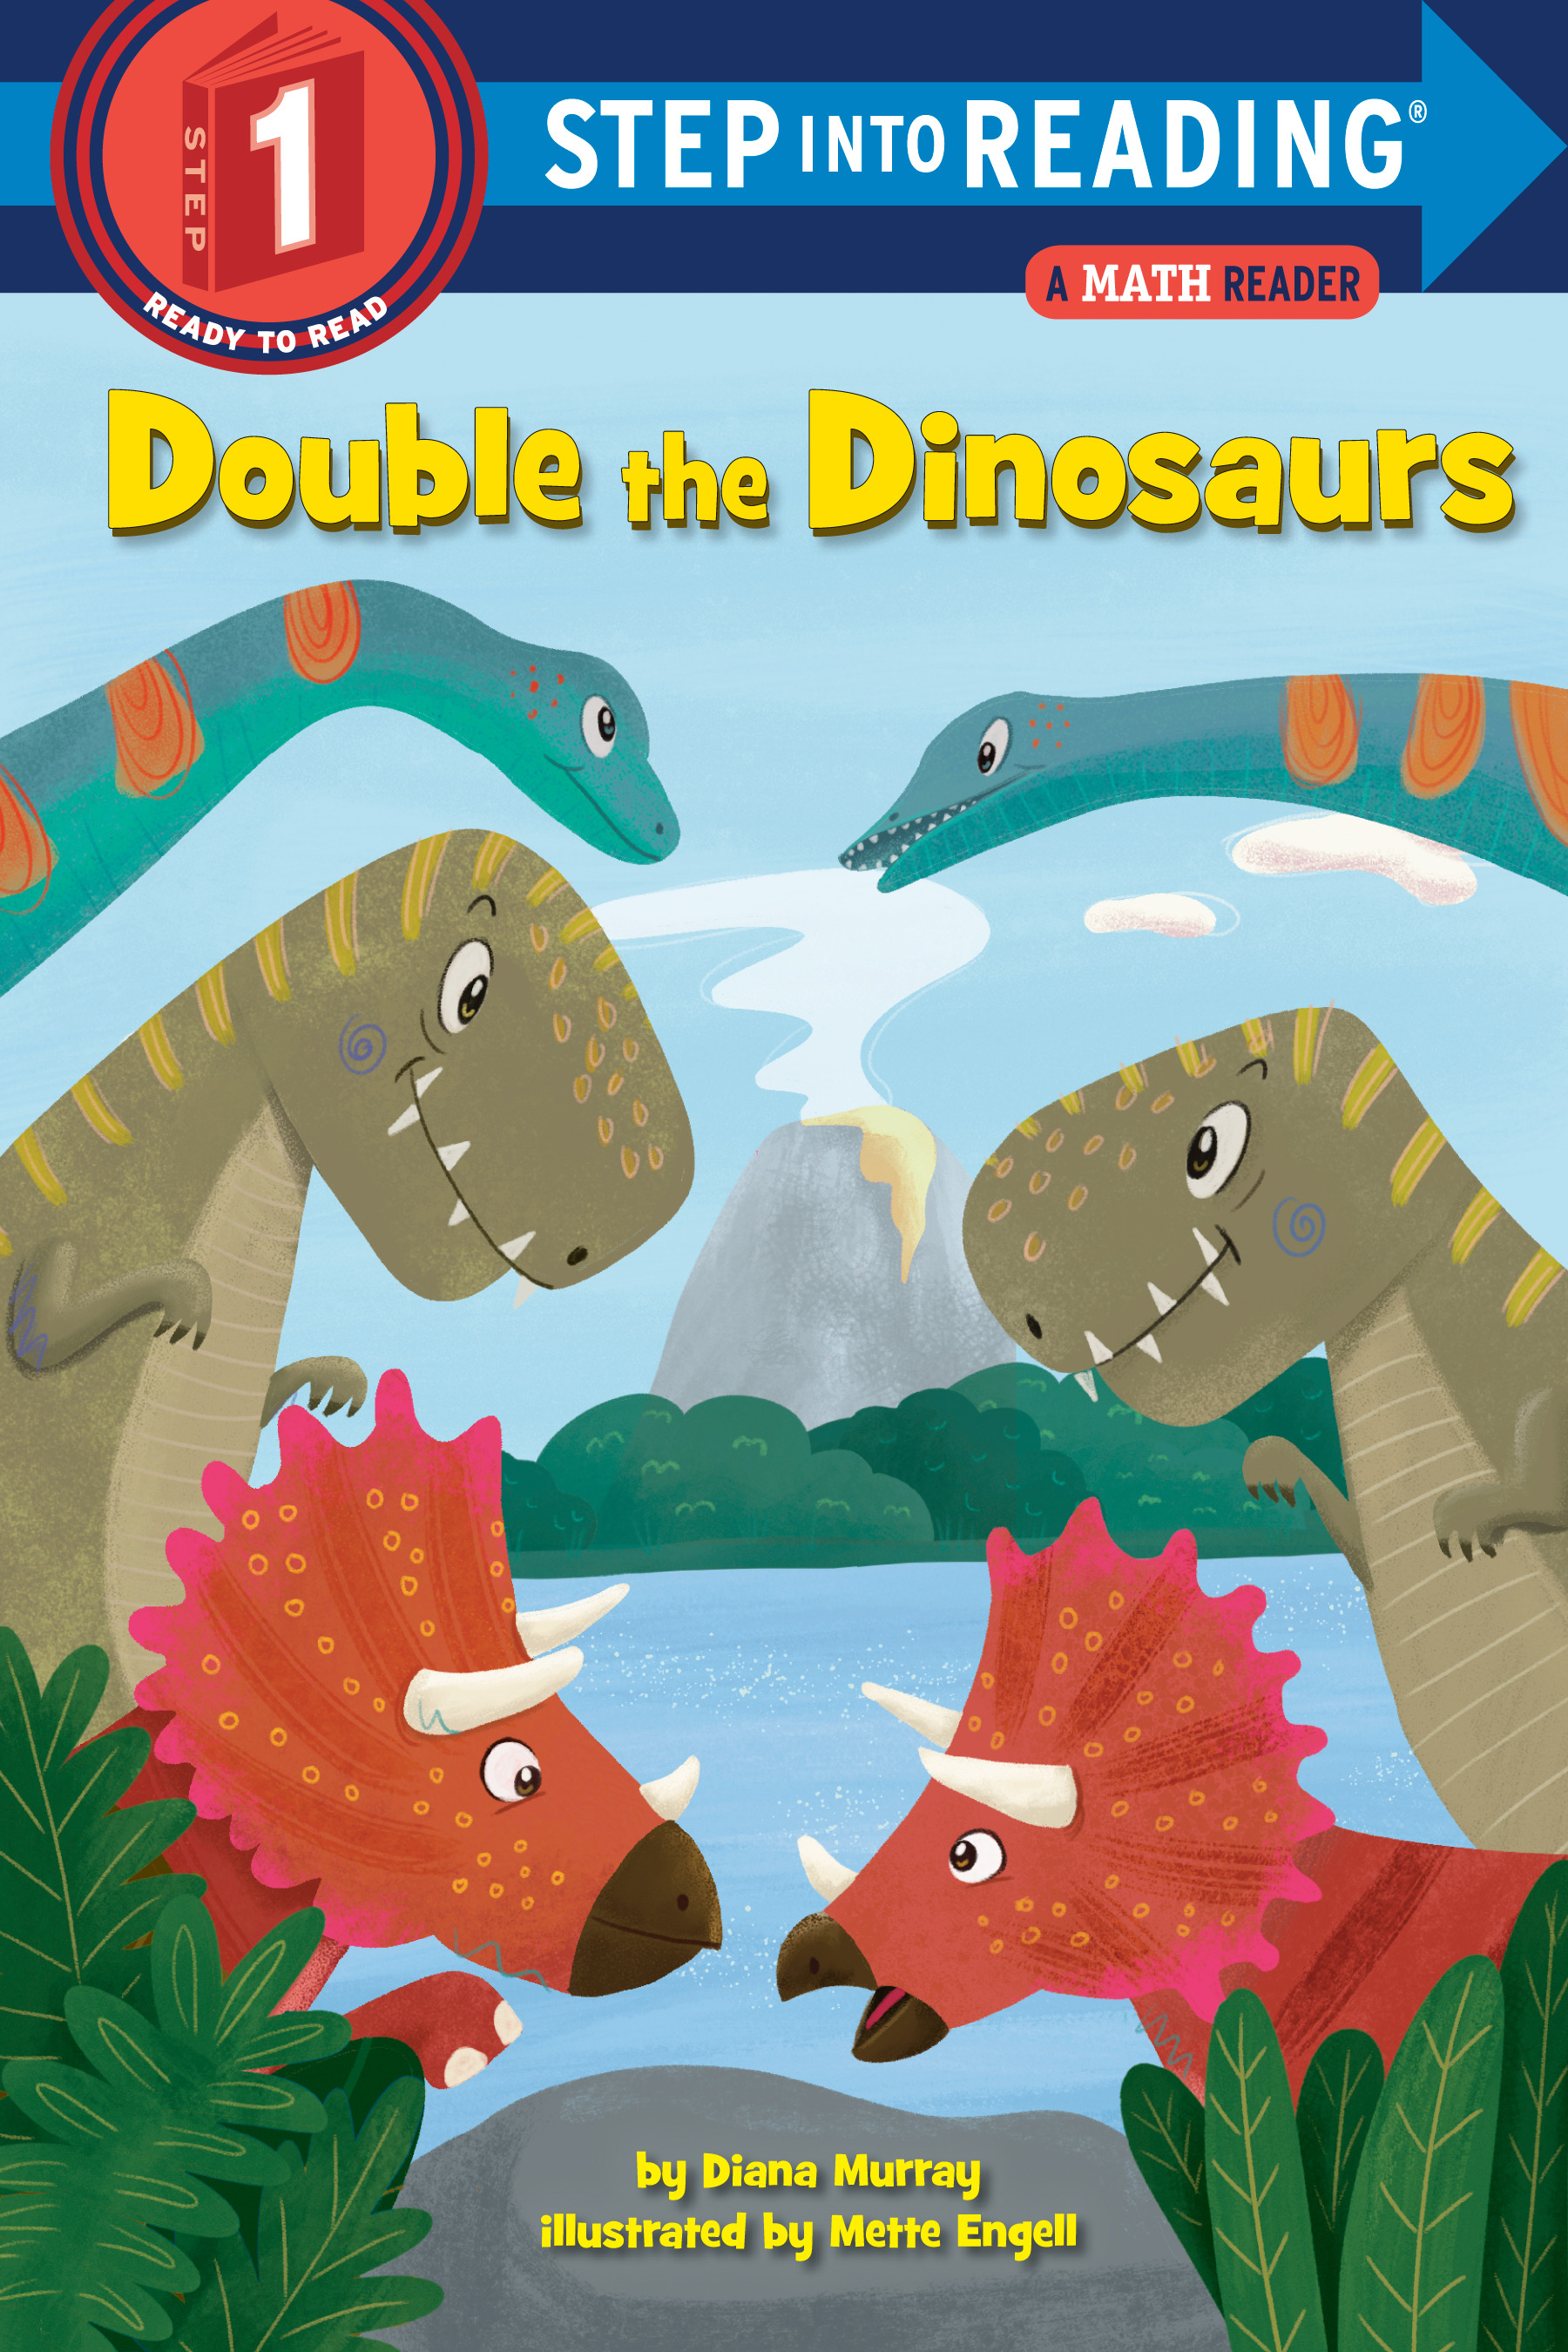 Double the Dinosaurs: A Math Reader | First reader